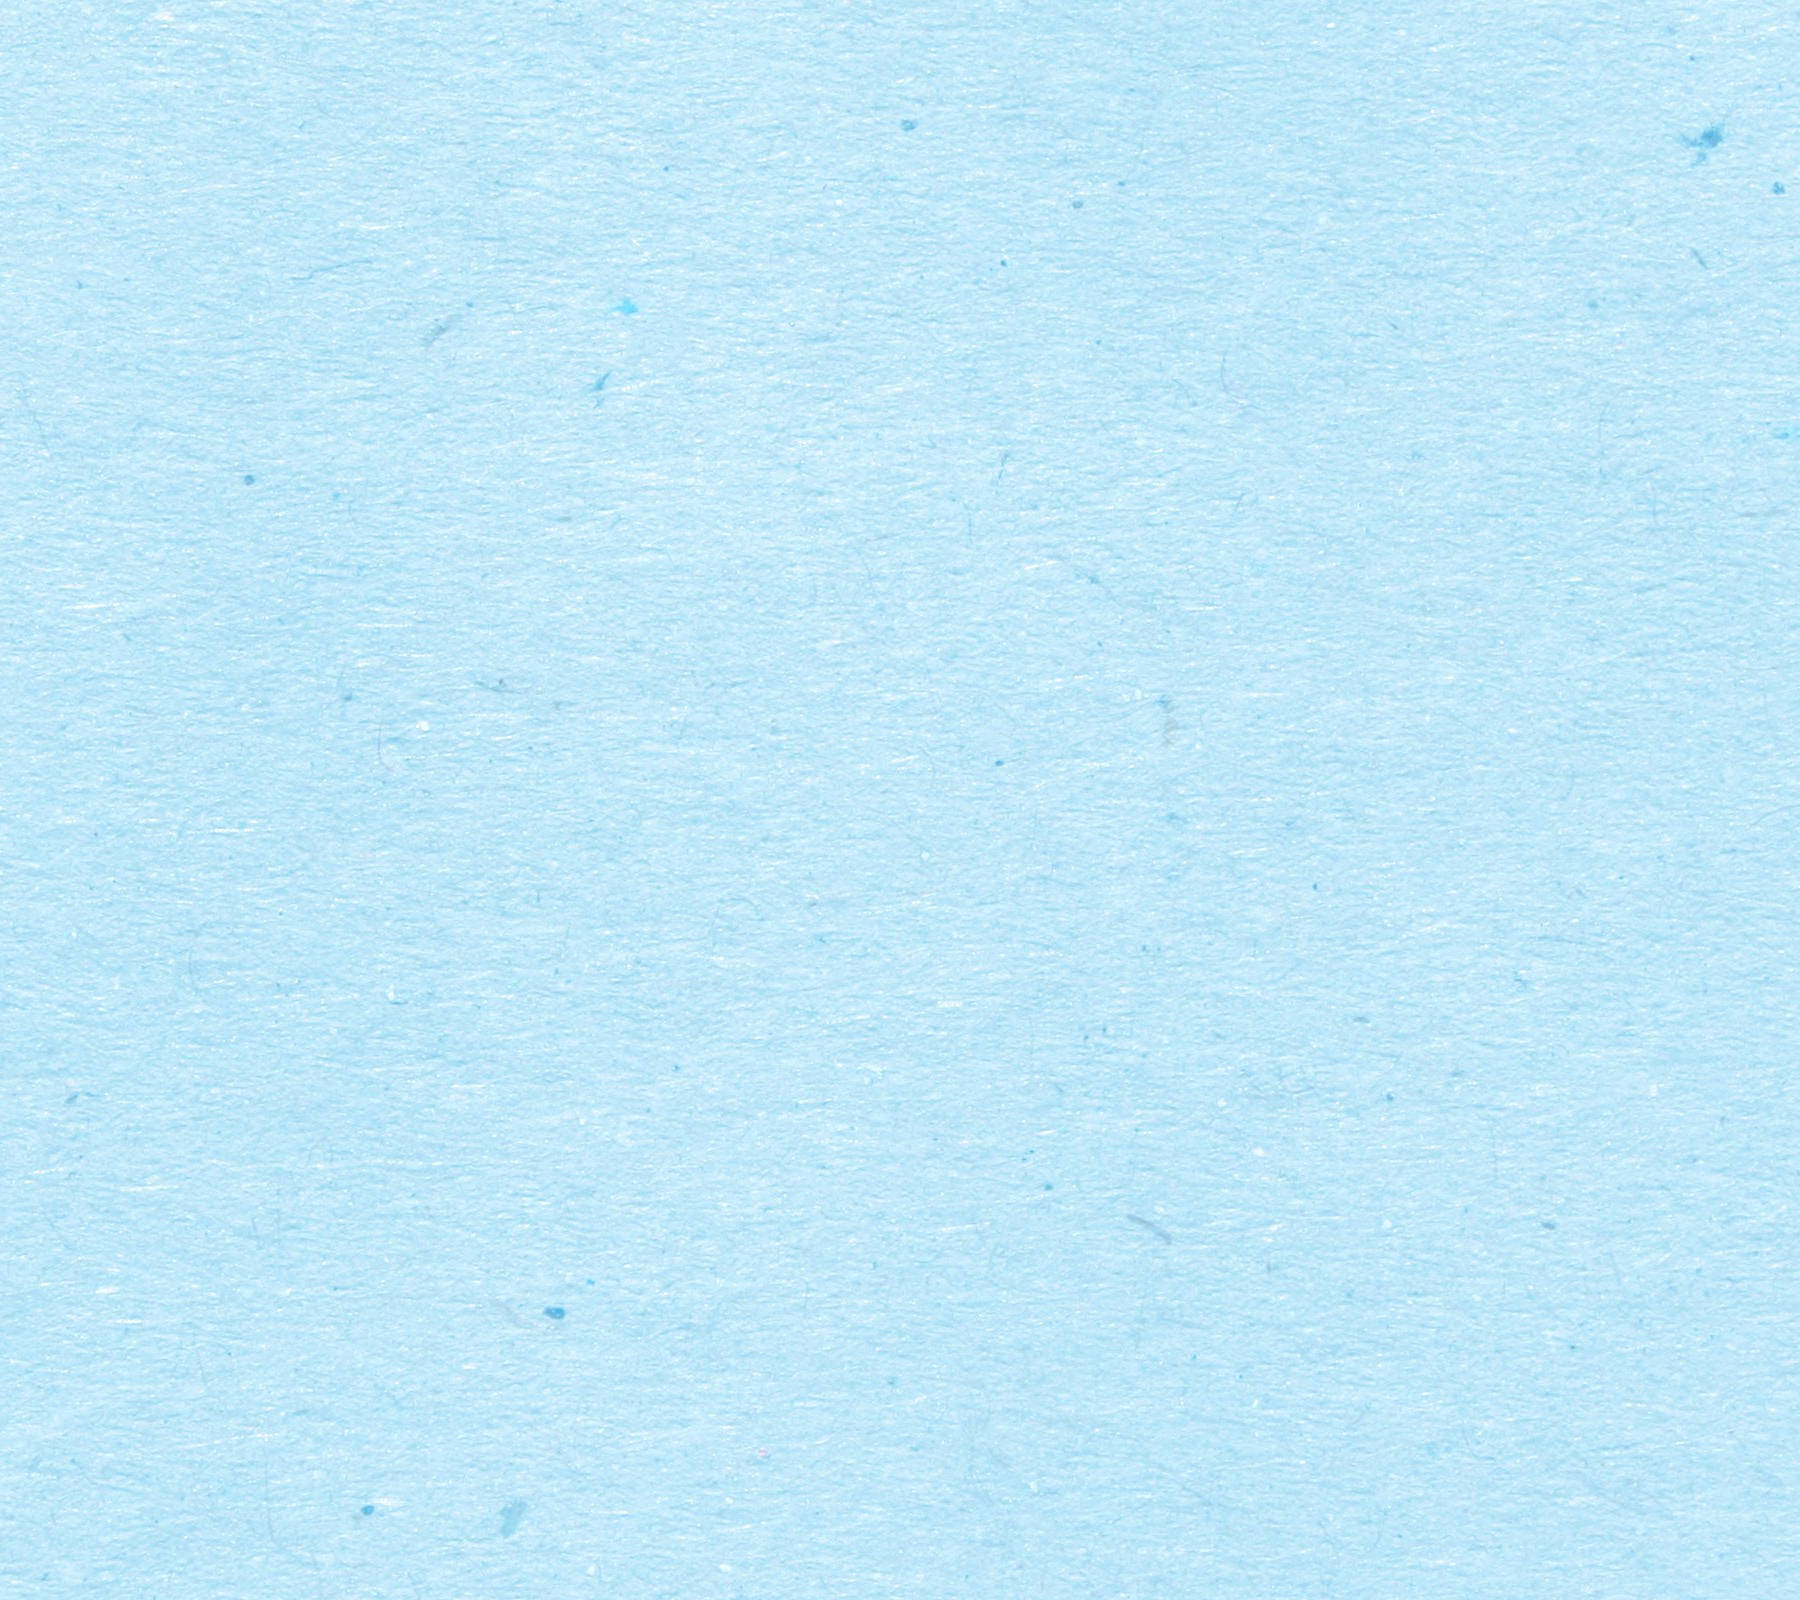 Baby Blue Paper Background with Flecks